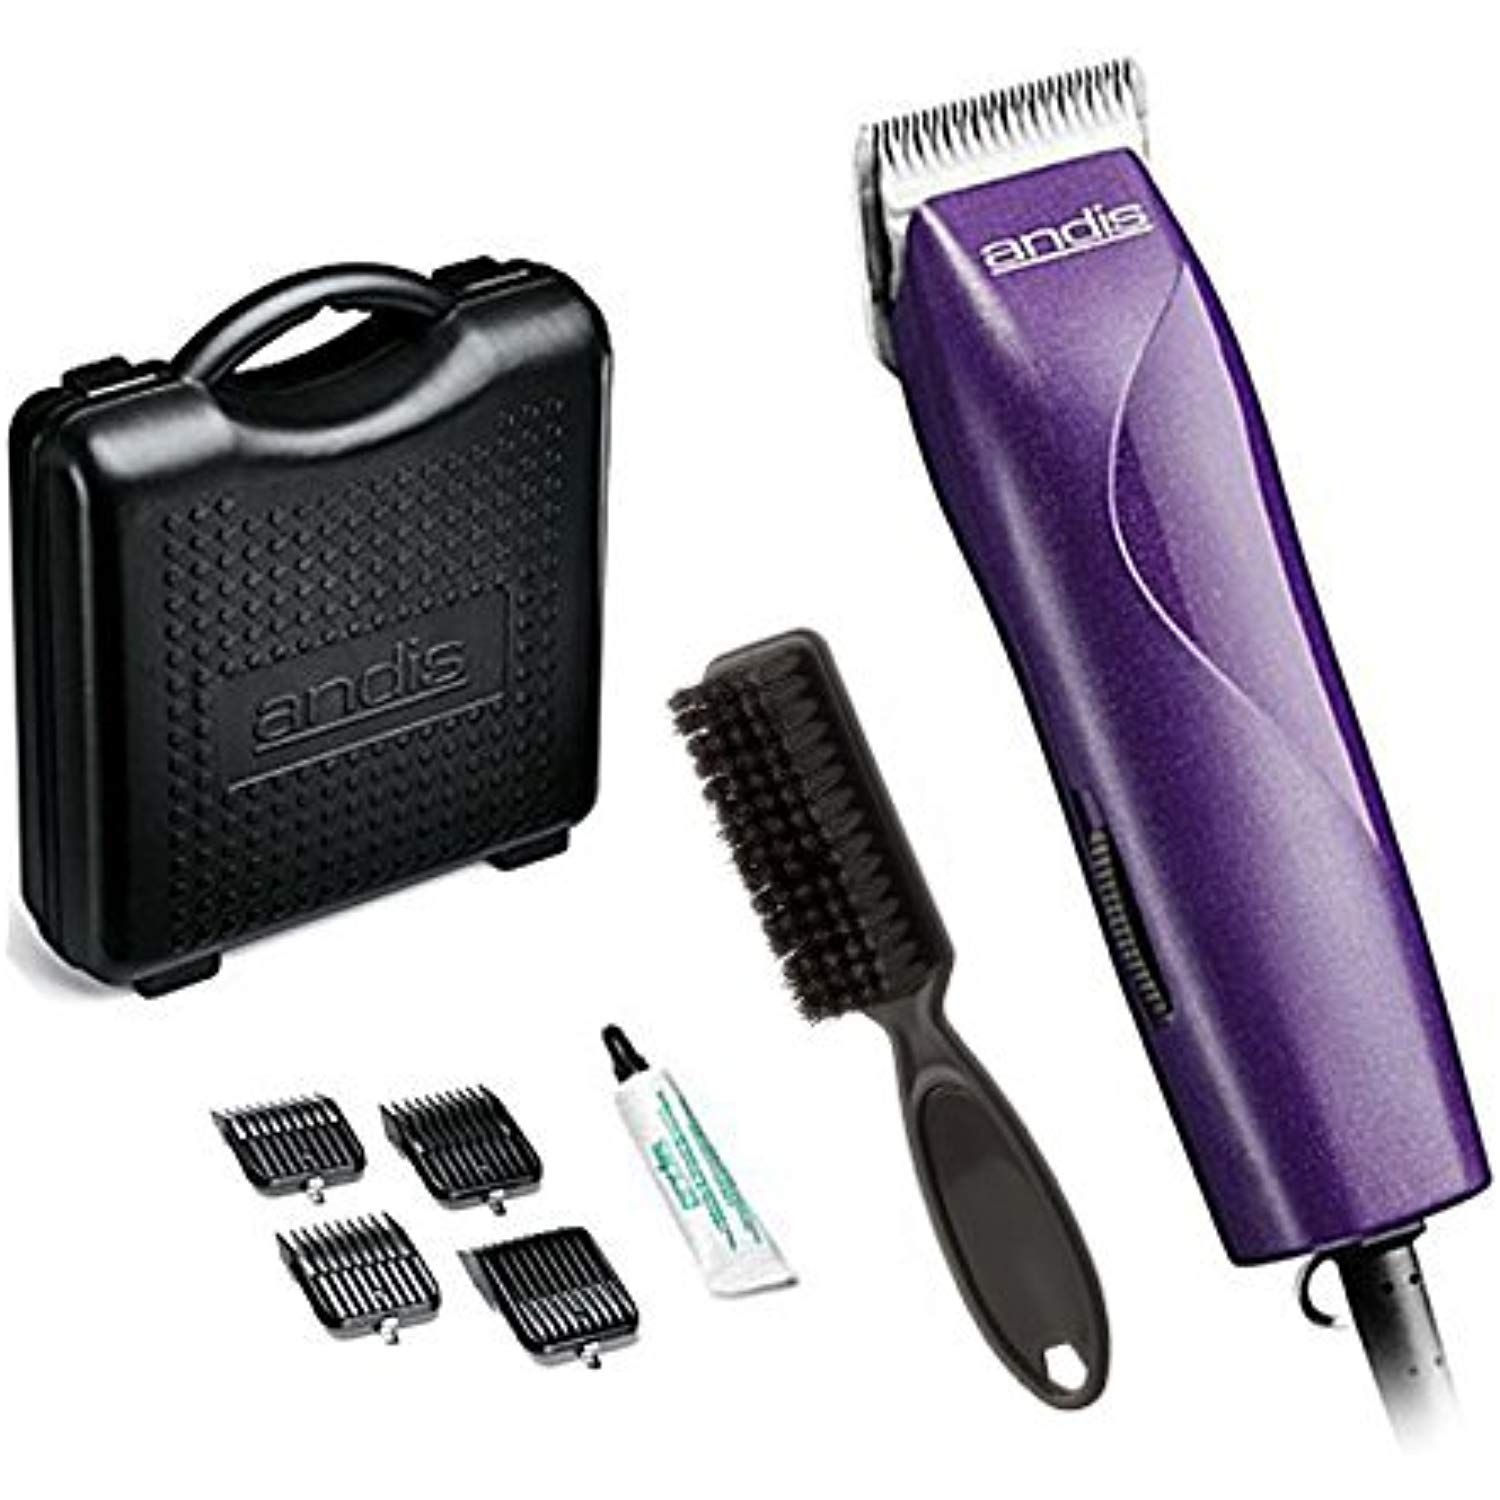 Andis Easyclip 8 Piece Dog Grooming Clipper Kit With Ceramicedge Detachable 10 Blade With 4 Attachment Combs With Images Dog Grooming Clippers Dog Grooming Dog Clippers